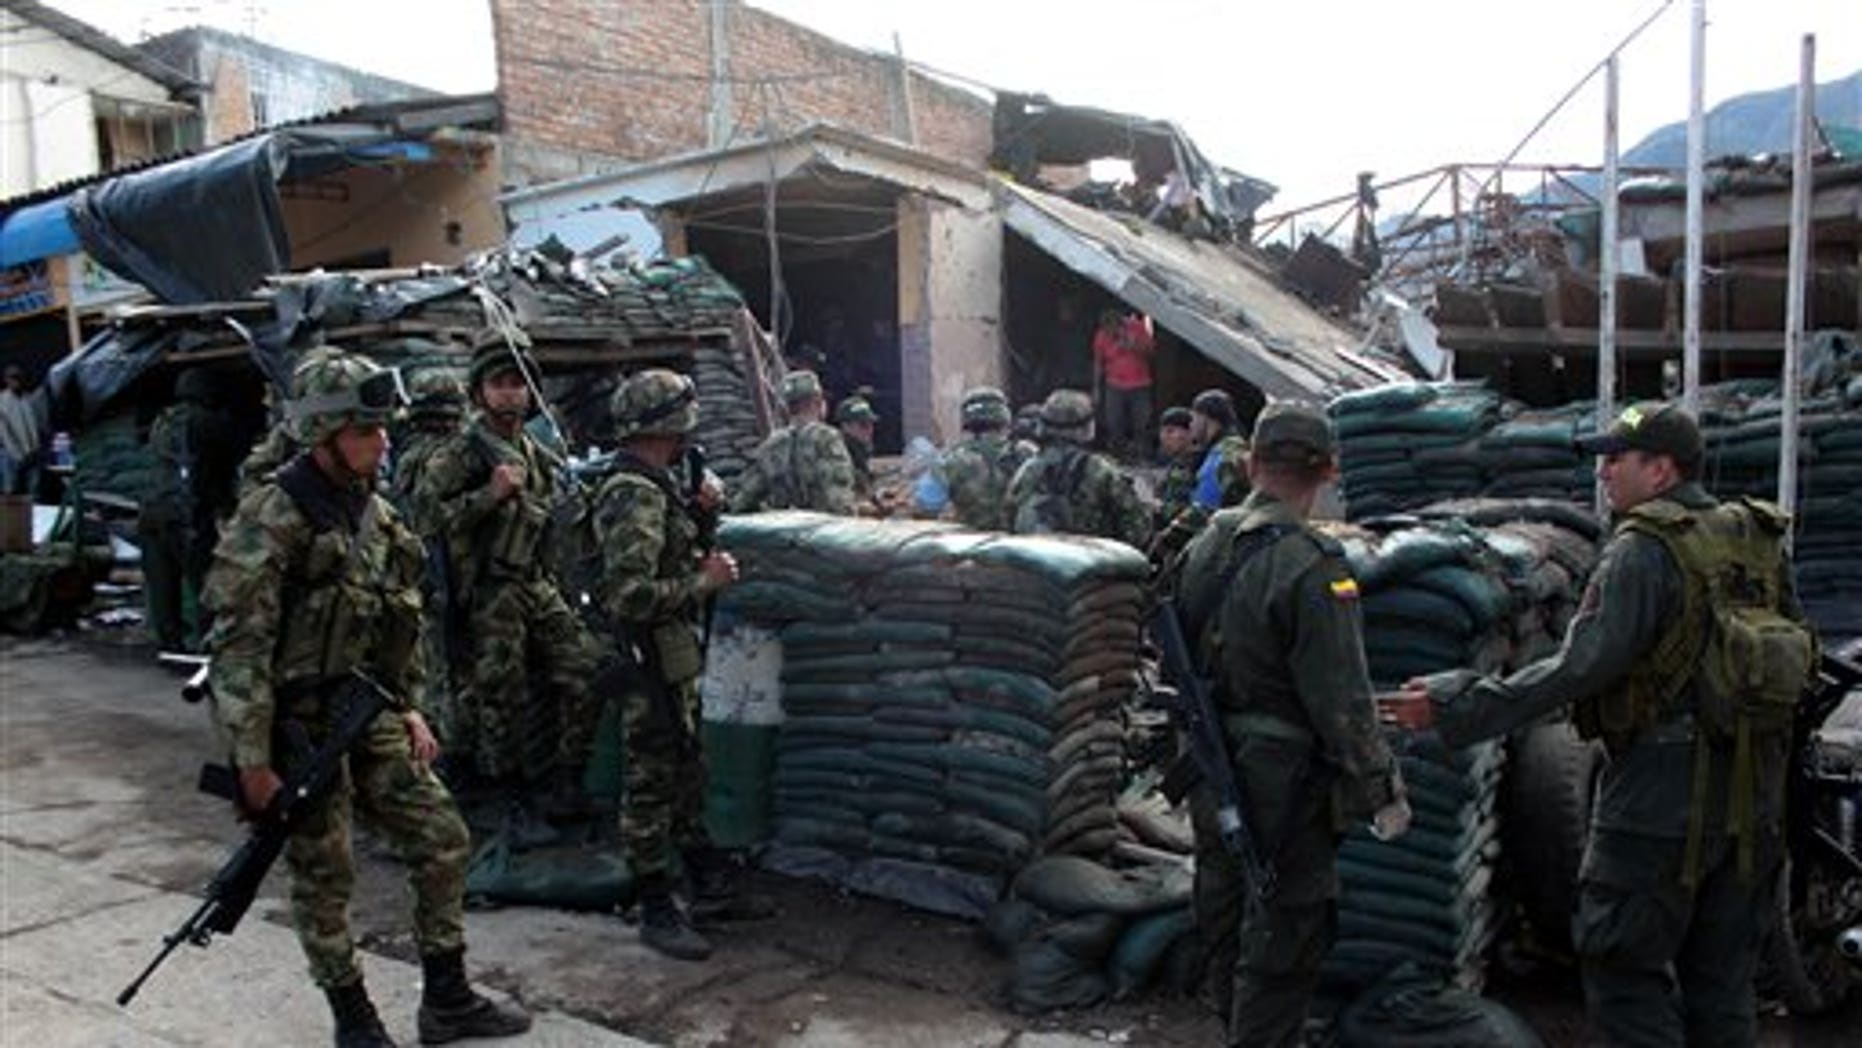 Police officers and soldiers stand in front of the destroyed police station of Inza, in Colombia's southern Cauca state, Saturday, Dec. 7, 2013. The Colombian Army said that five members of the military, two civilians and a police officer were killed after rebels of the Revolutionary Armed Forces of Colombia, FARC, threw artisanal mortar at the post from a truck, destroying that and several other buildings. (AP Photo/Juan Bautista Diaz)